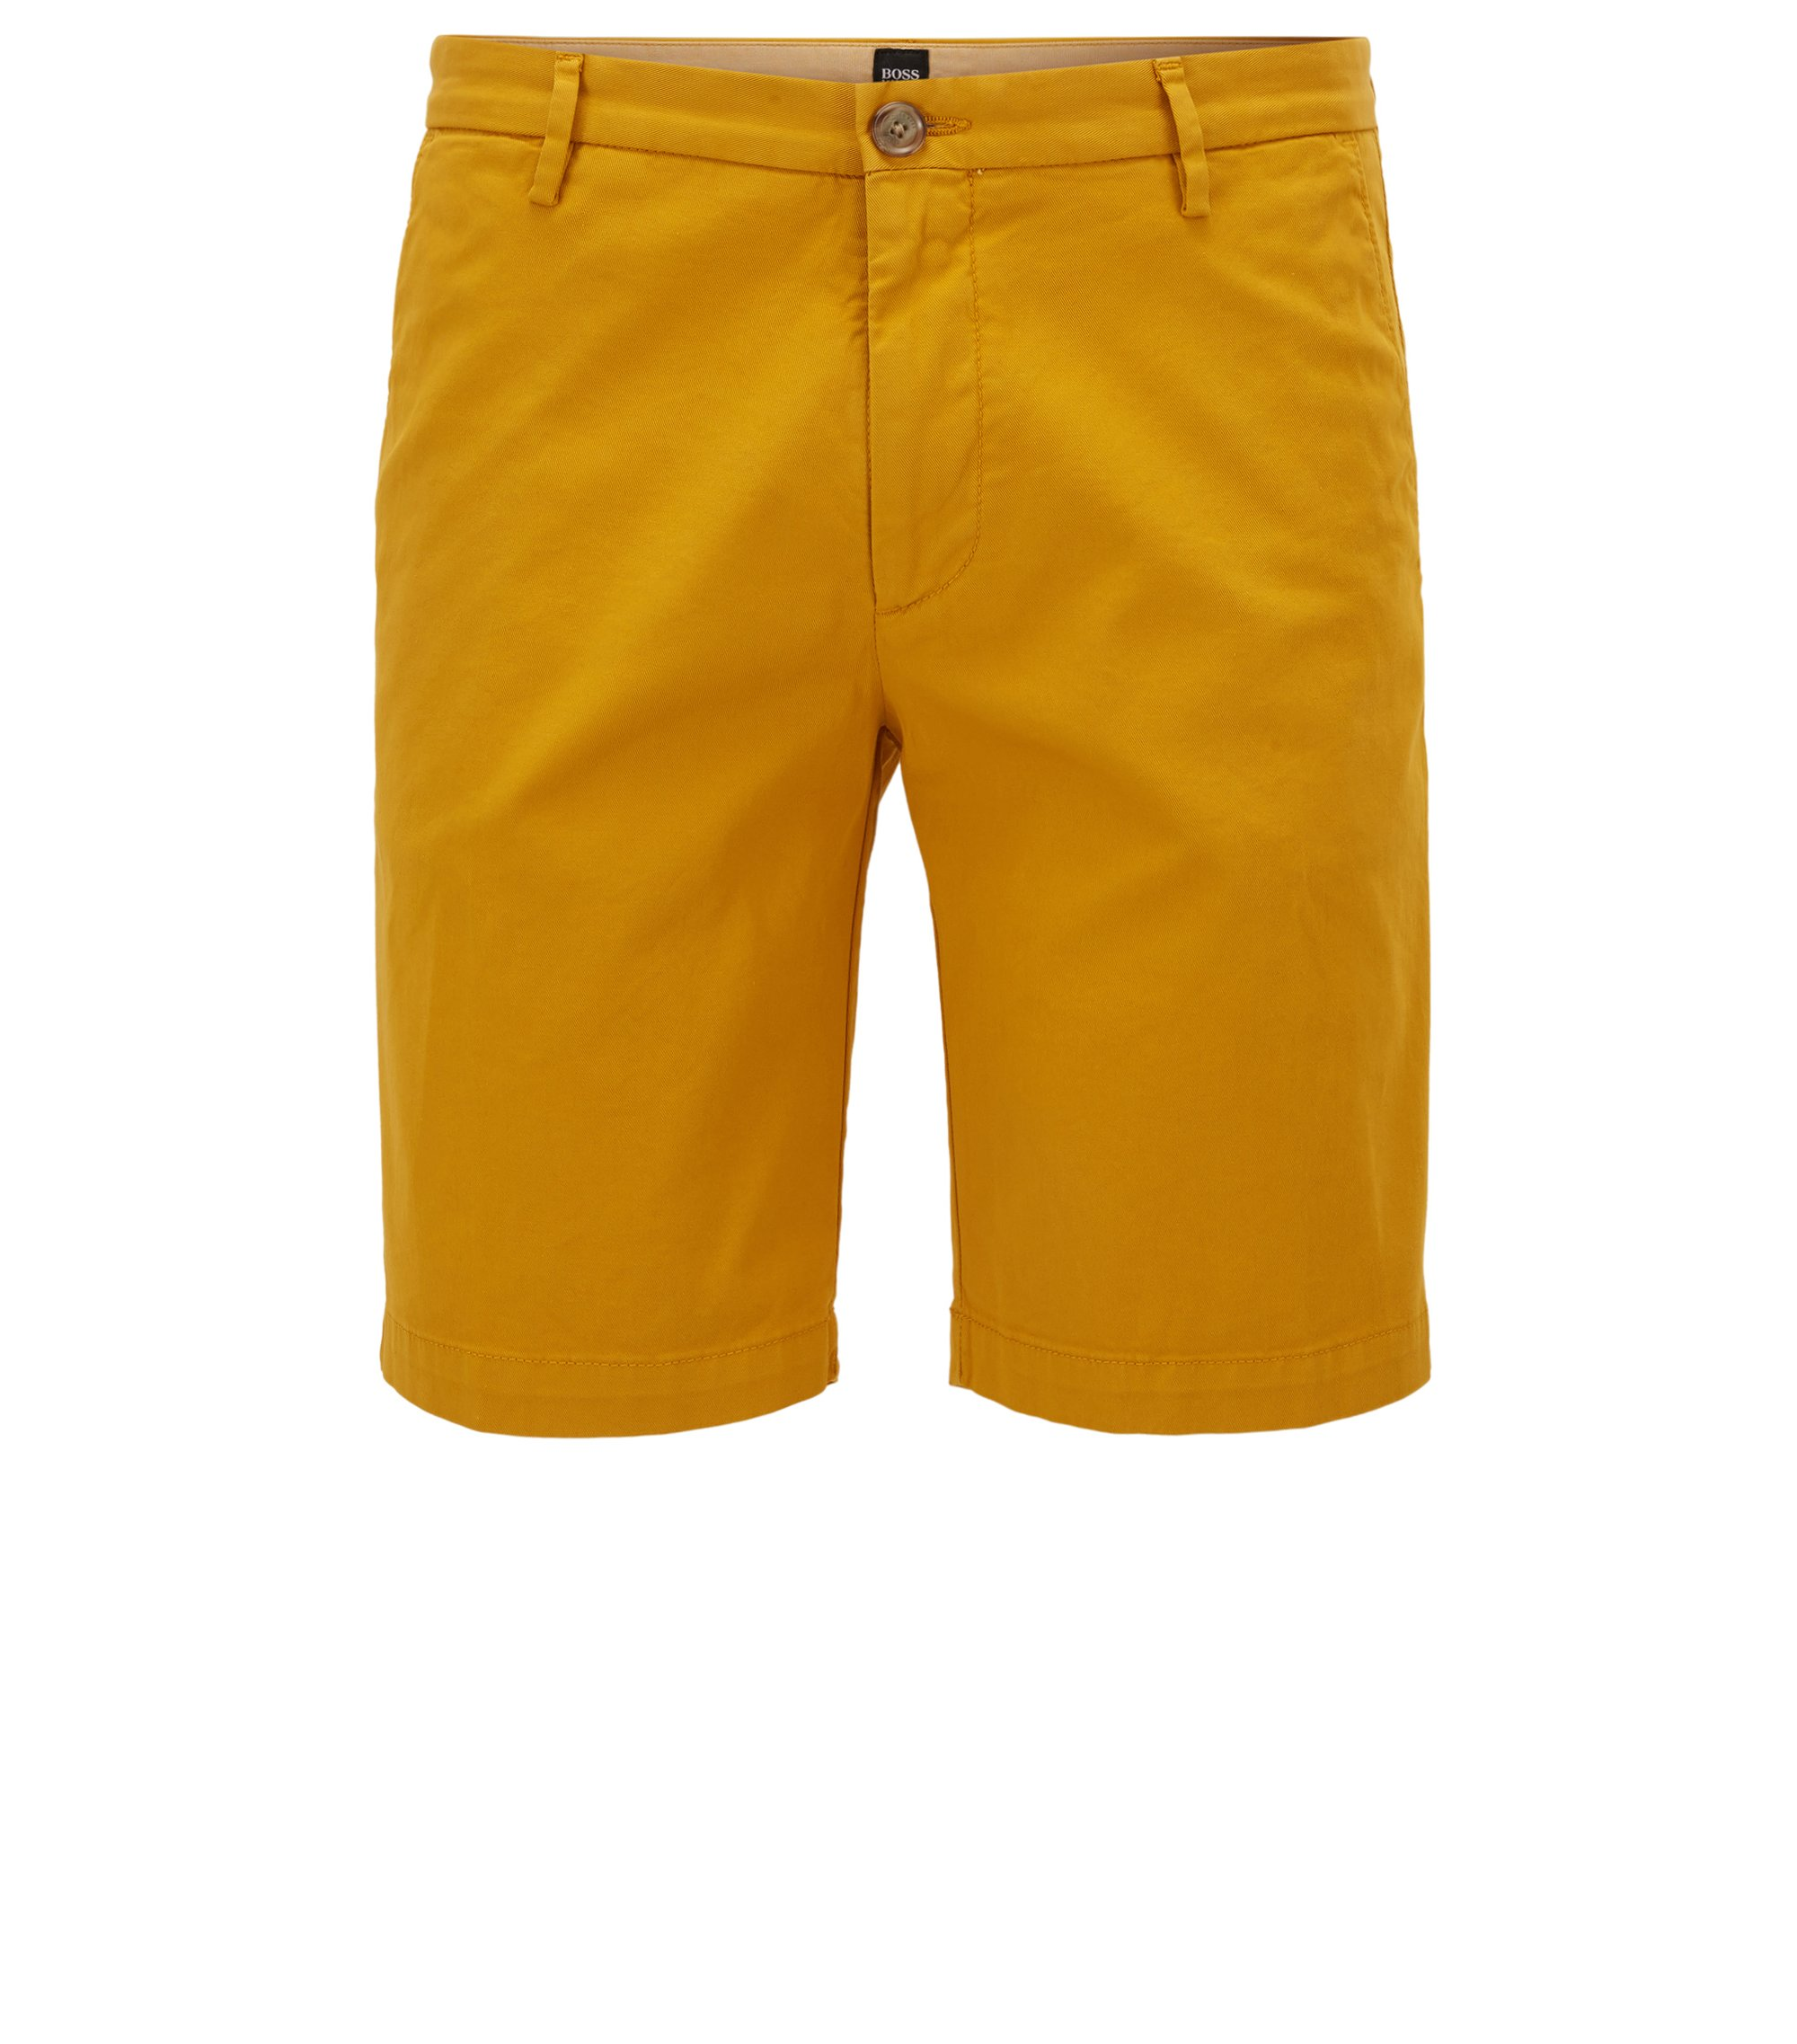 Slim-fit short in een gabardine van stretchkatoen, goud